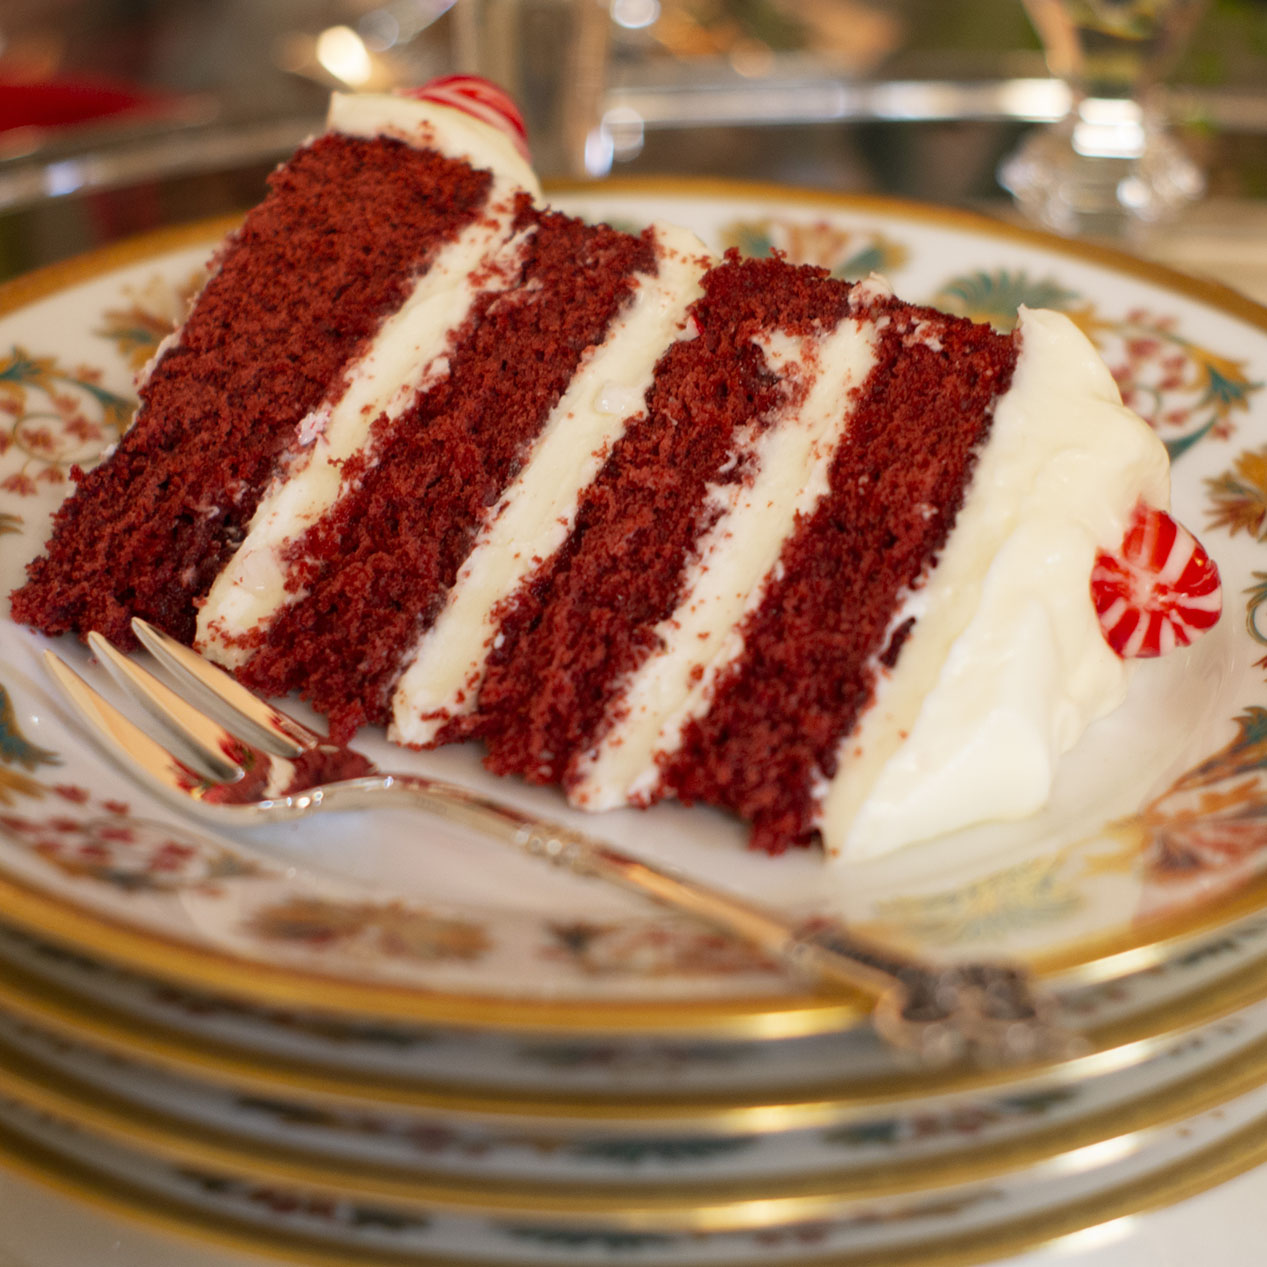 A slice of Peppermint Red Velvet Cake on a Haviland Haute Epoque Dessert Plate with a Christofle Renaissance dessert fork, both from Replacements, Ltd, on a holiday dessert table